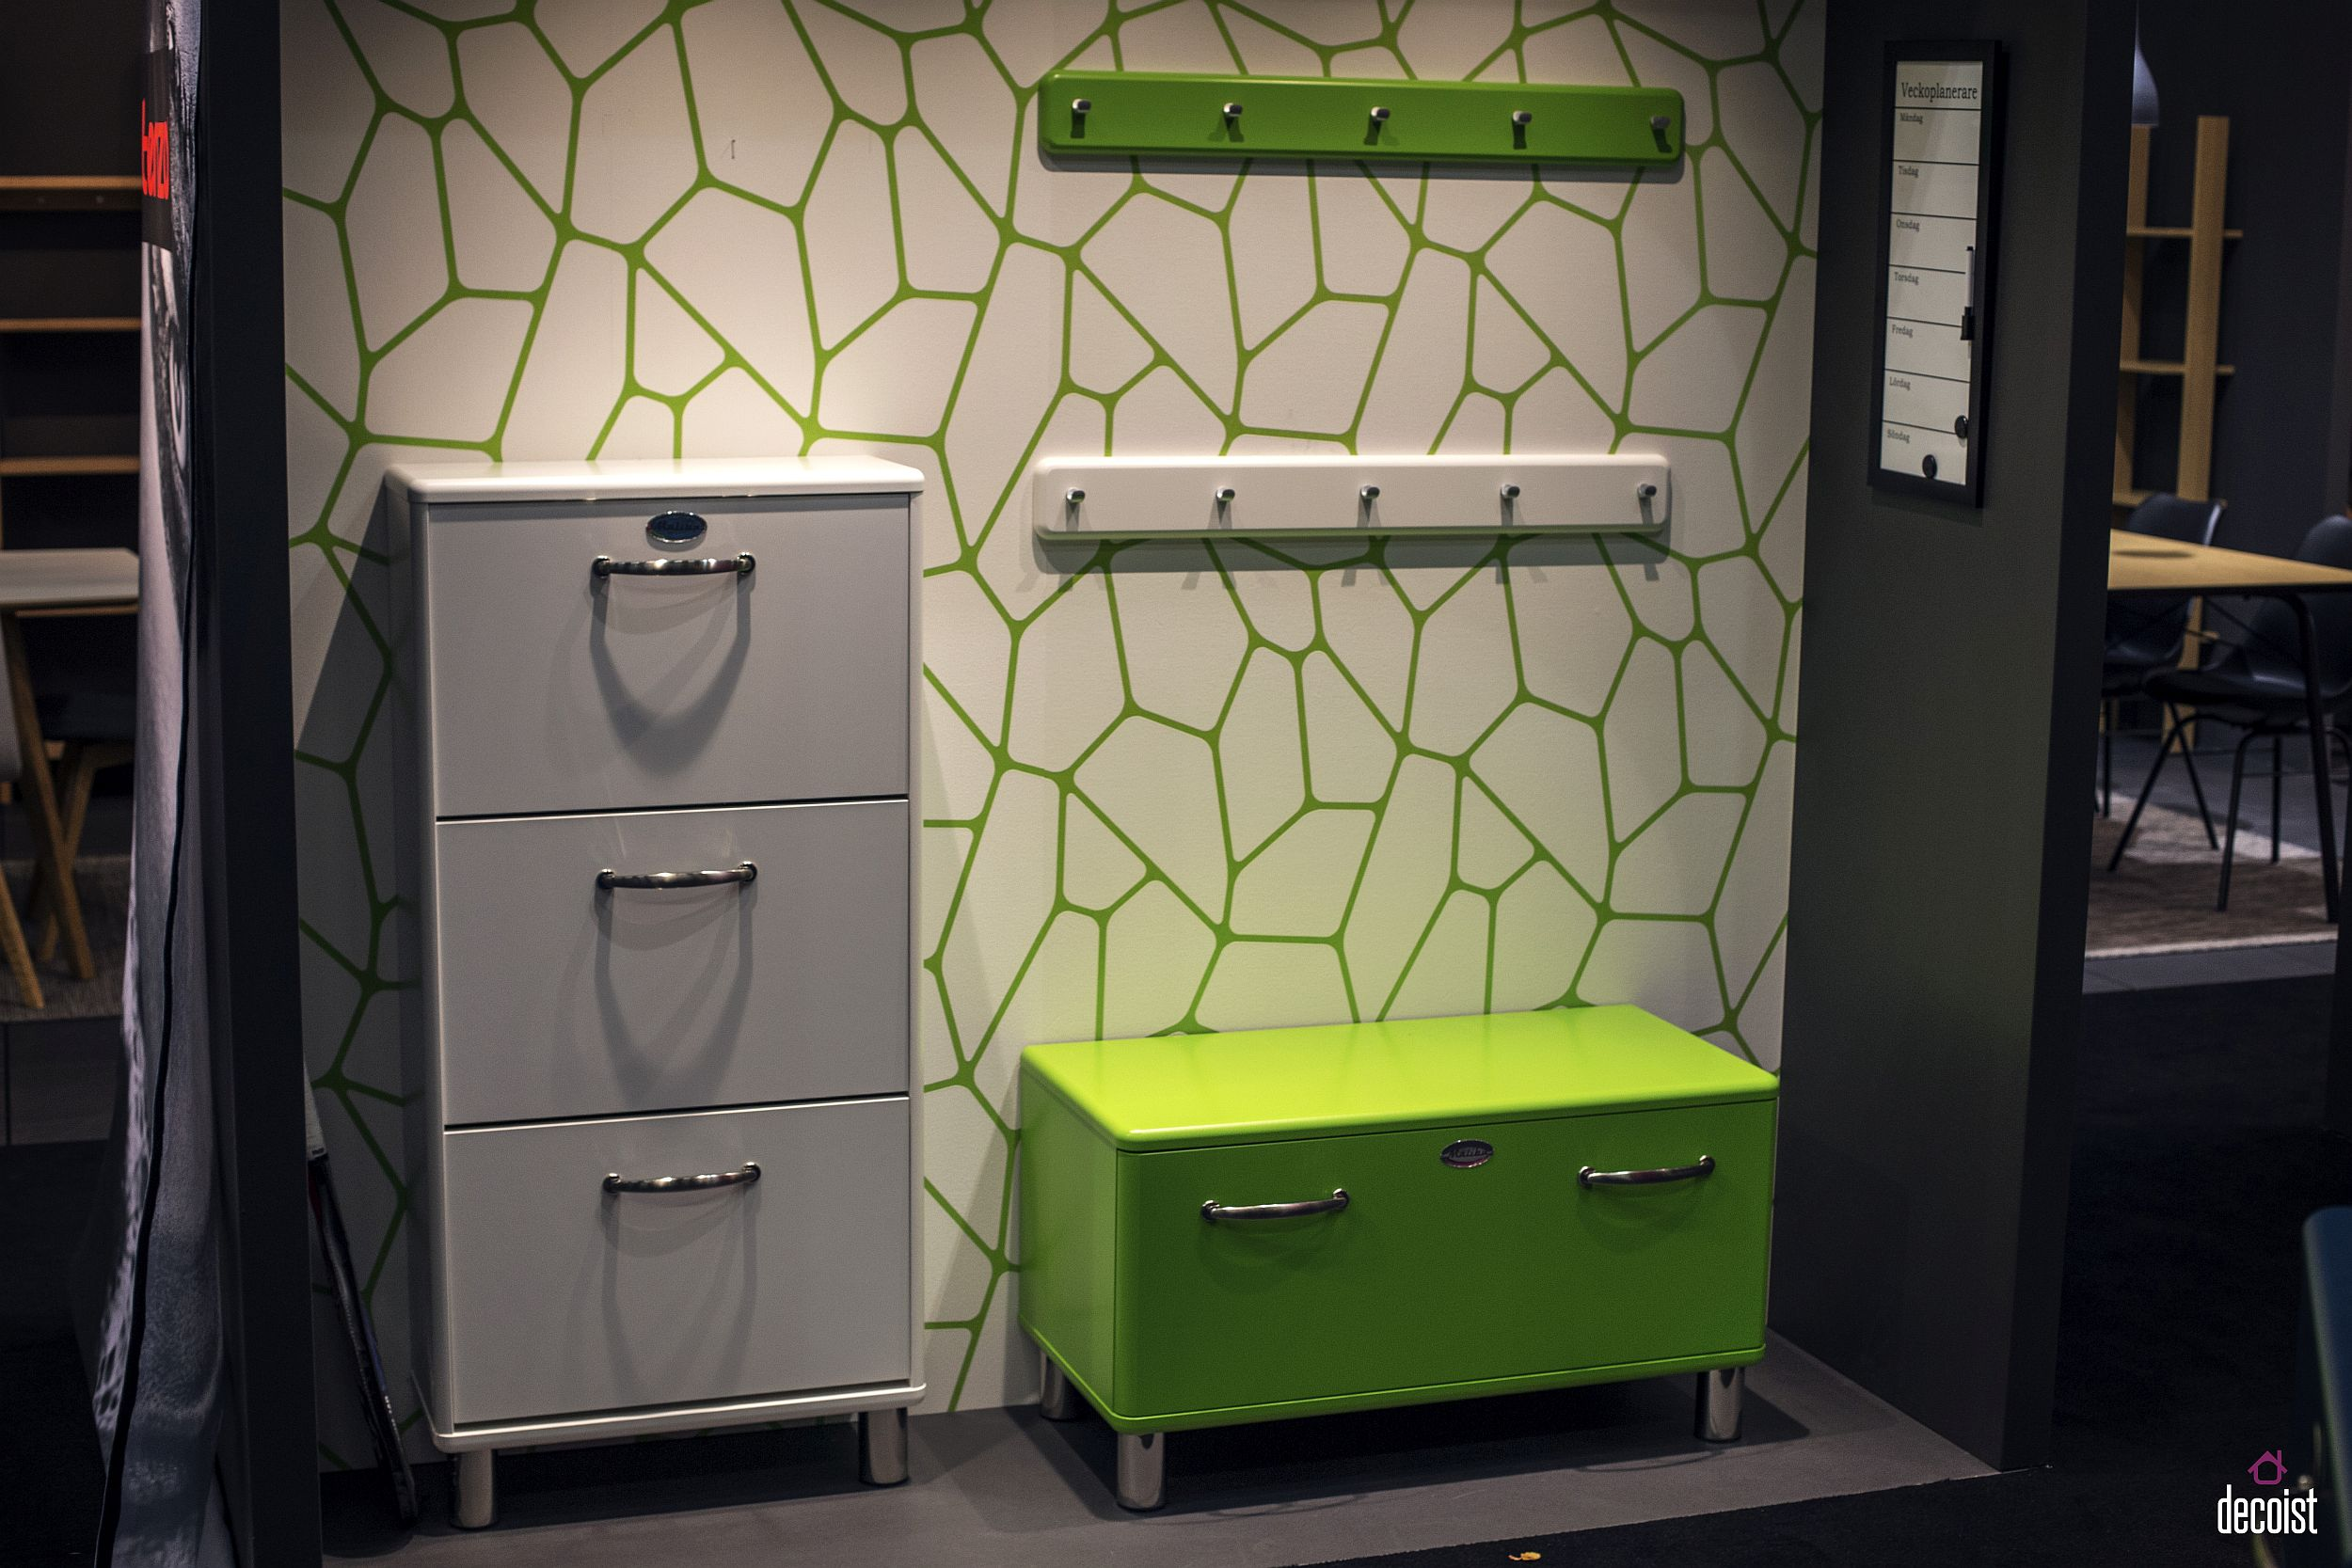 Modular units allow you to find bespoke solutions for the kids' room